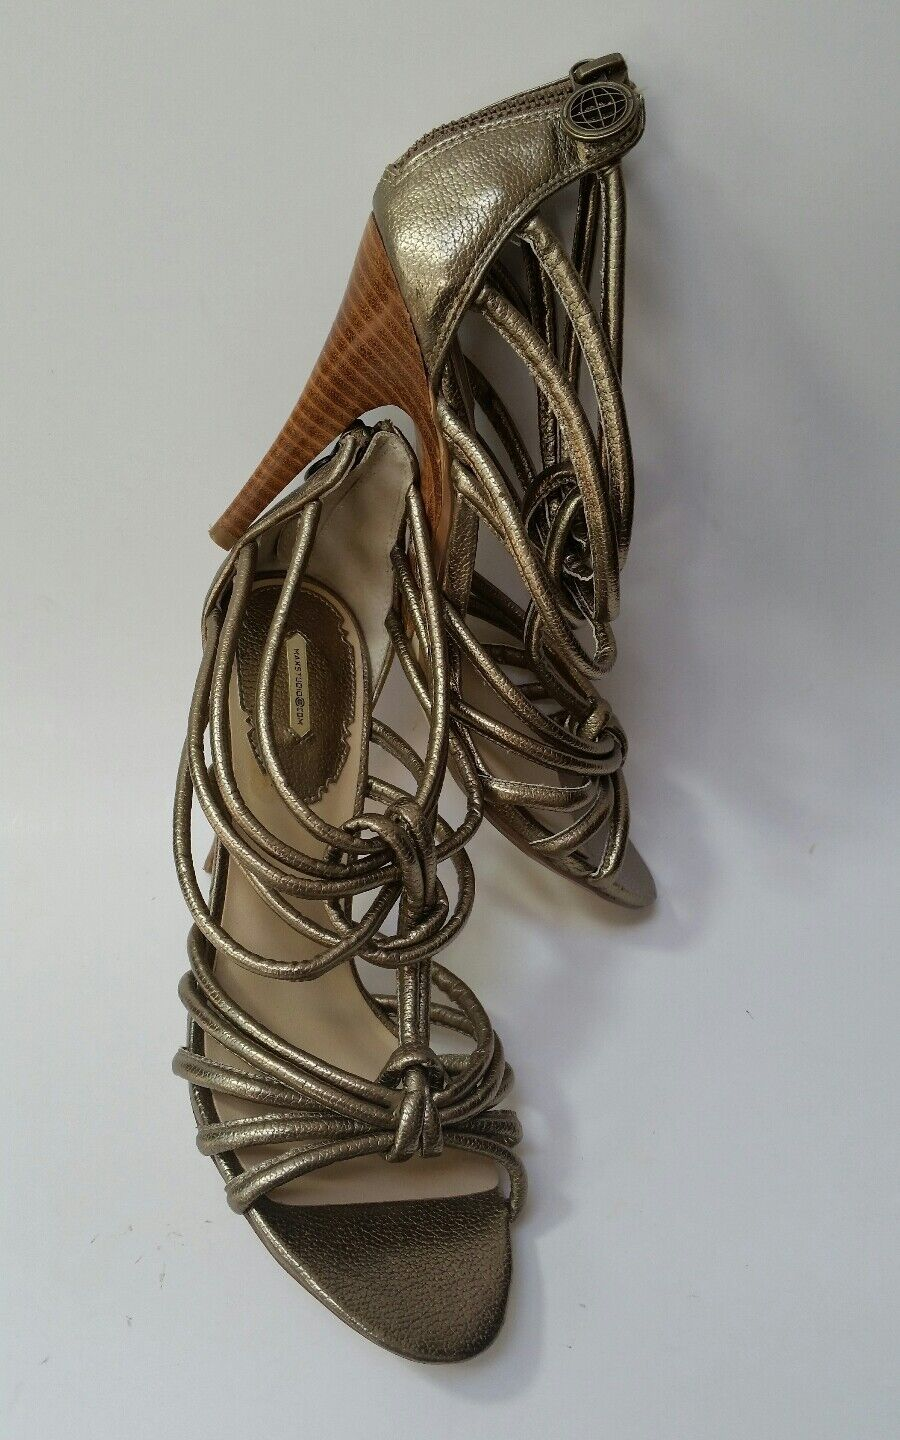 Max Studio shoes Heels Sandals Strappy Zipper Evenly gold Metallic Womens Size 7